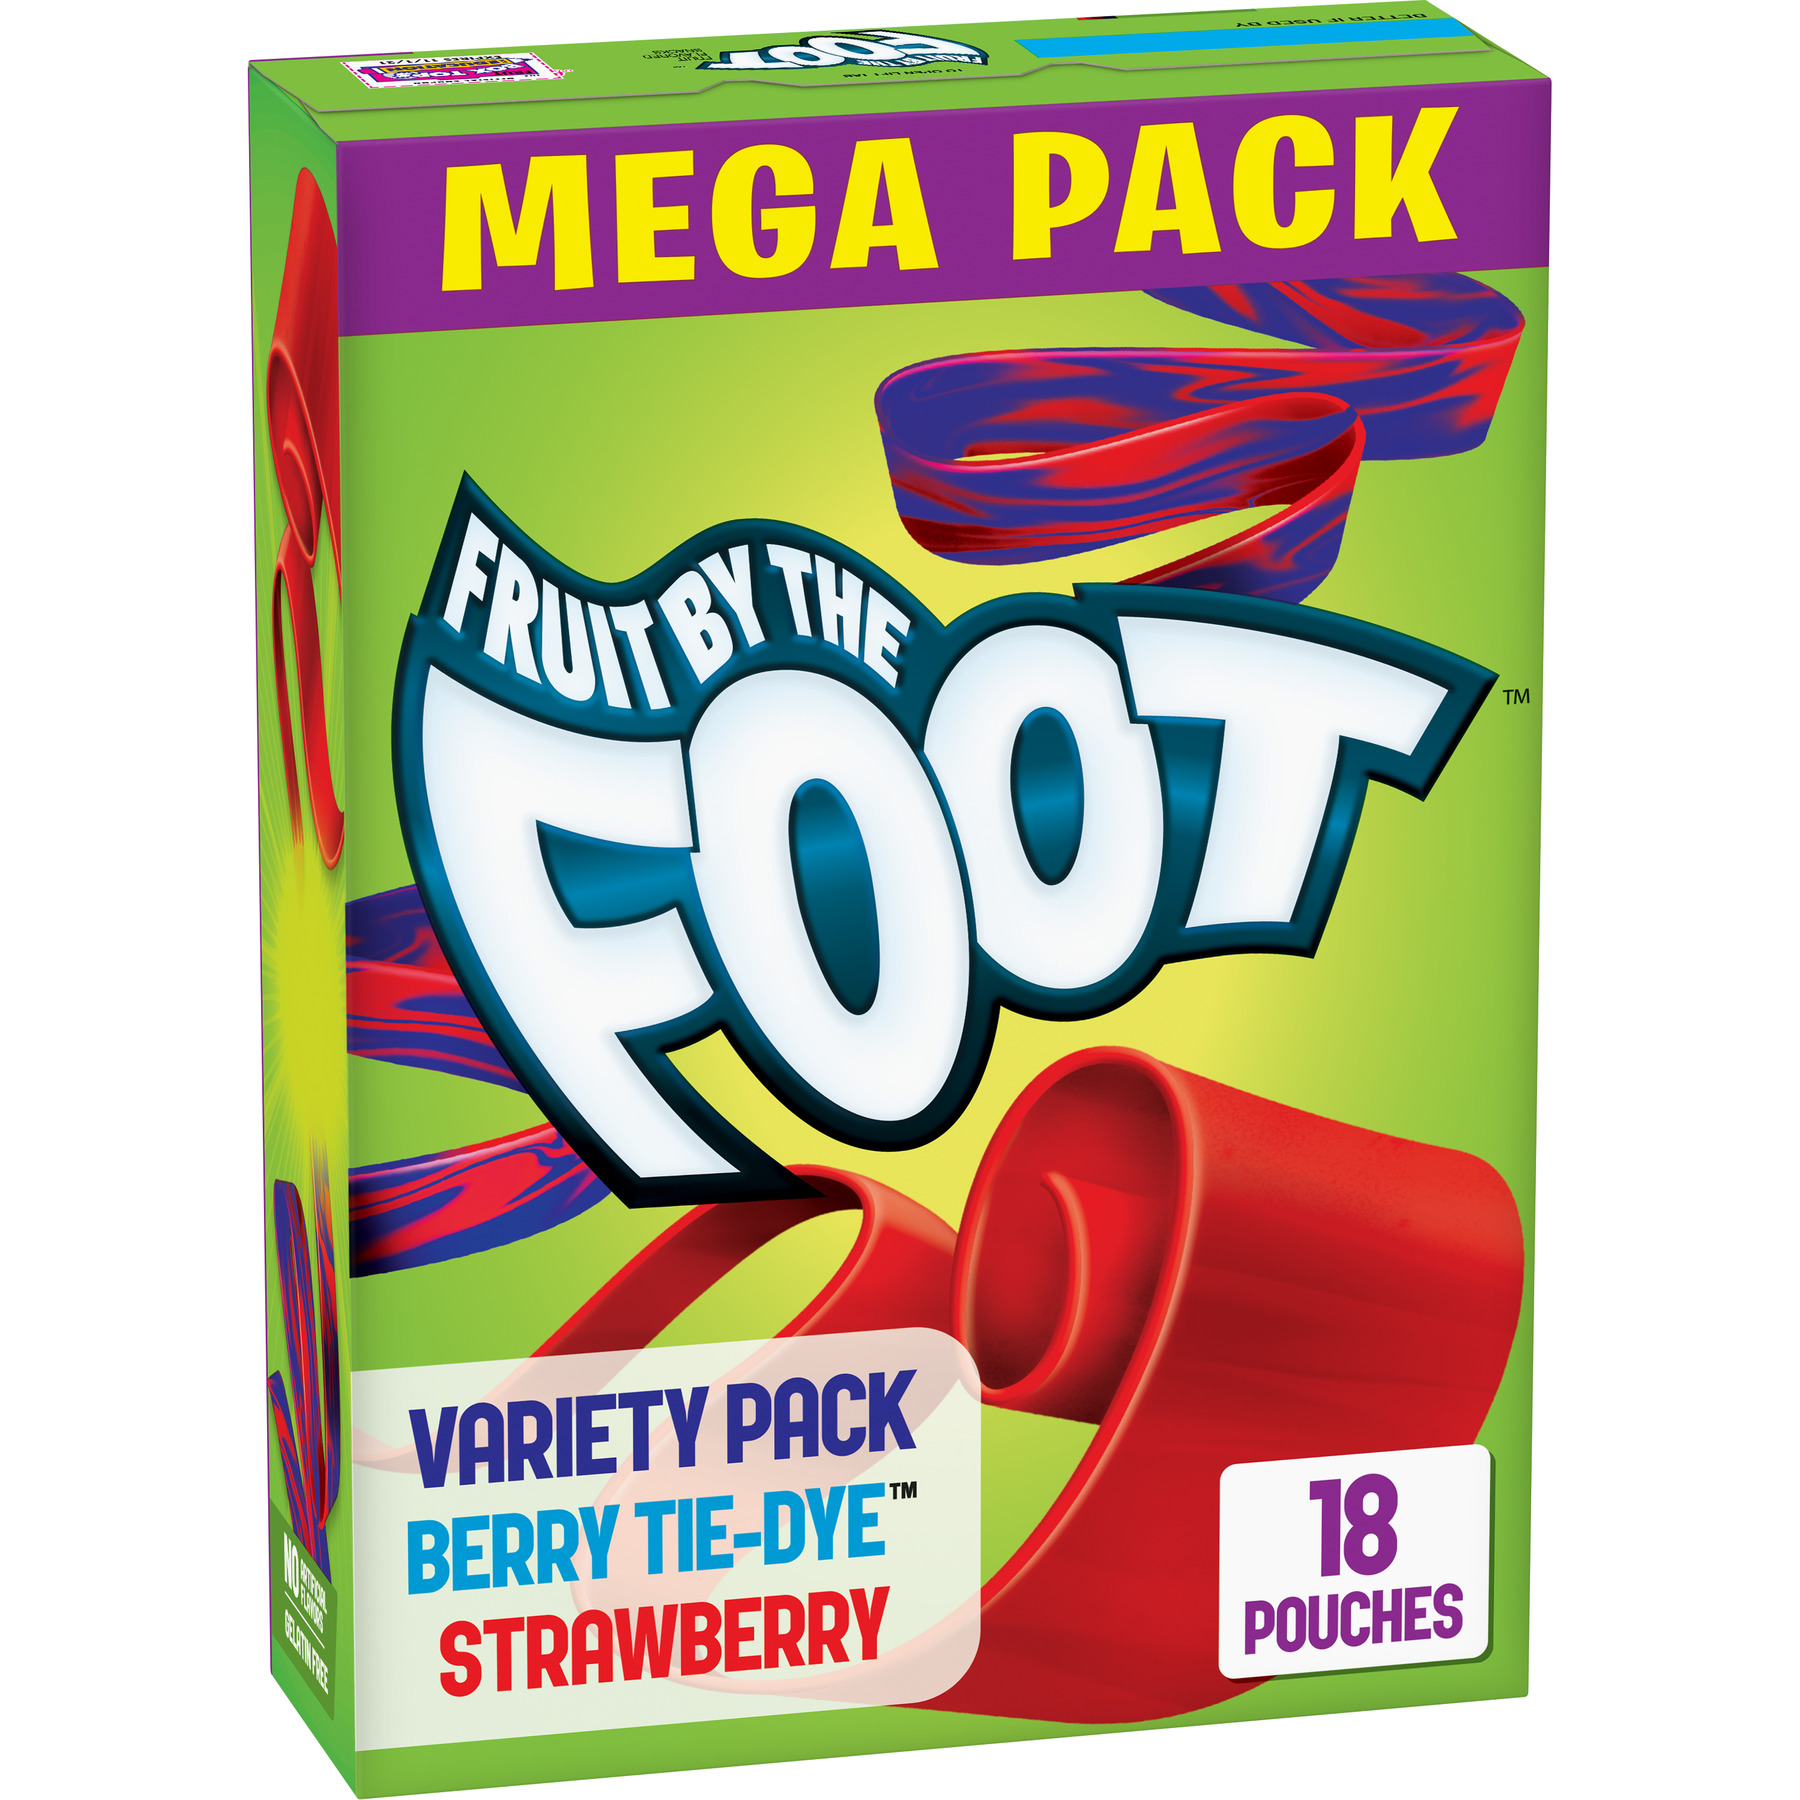 Betty Crocker Fruit By The Foot Strawberry Berry Fruit Snacks Variety Pack Pouches, 0.75 Oz., 18 Count